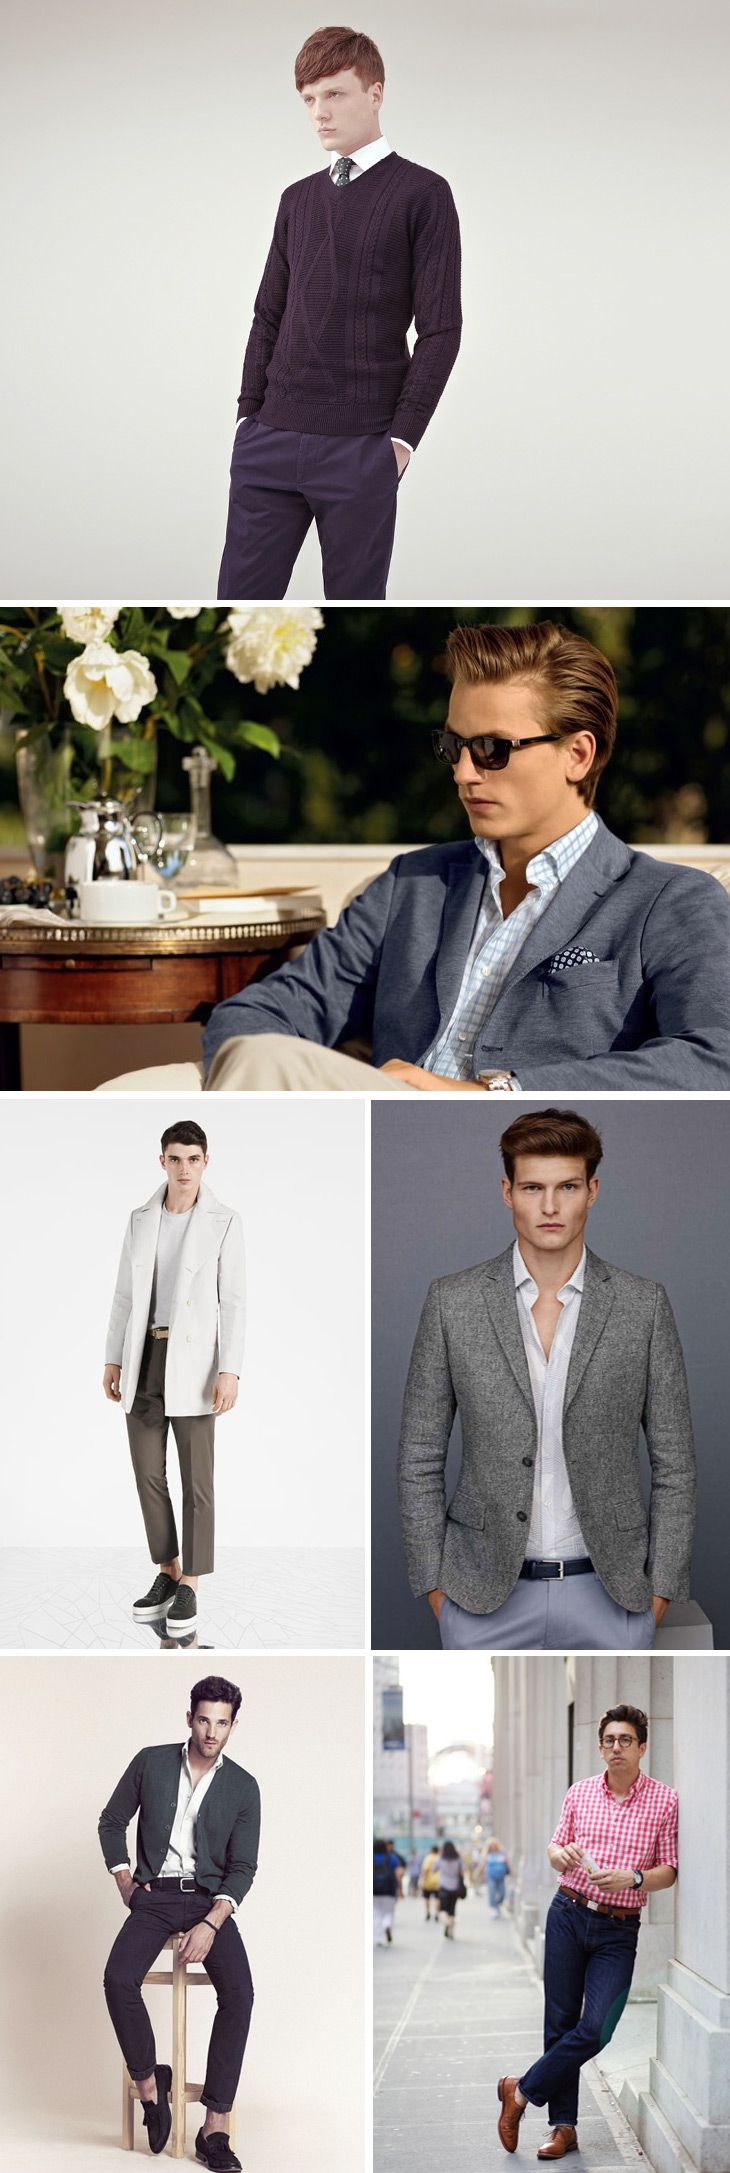 Dress code for smart casual smart casual dress code for men pictures - Ever Wondered How To Pull Off The Smart Casual Dress Code More Casual Or More Smart